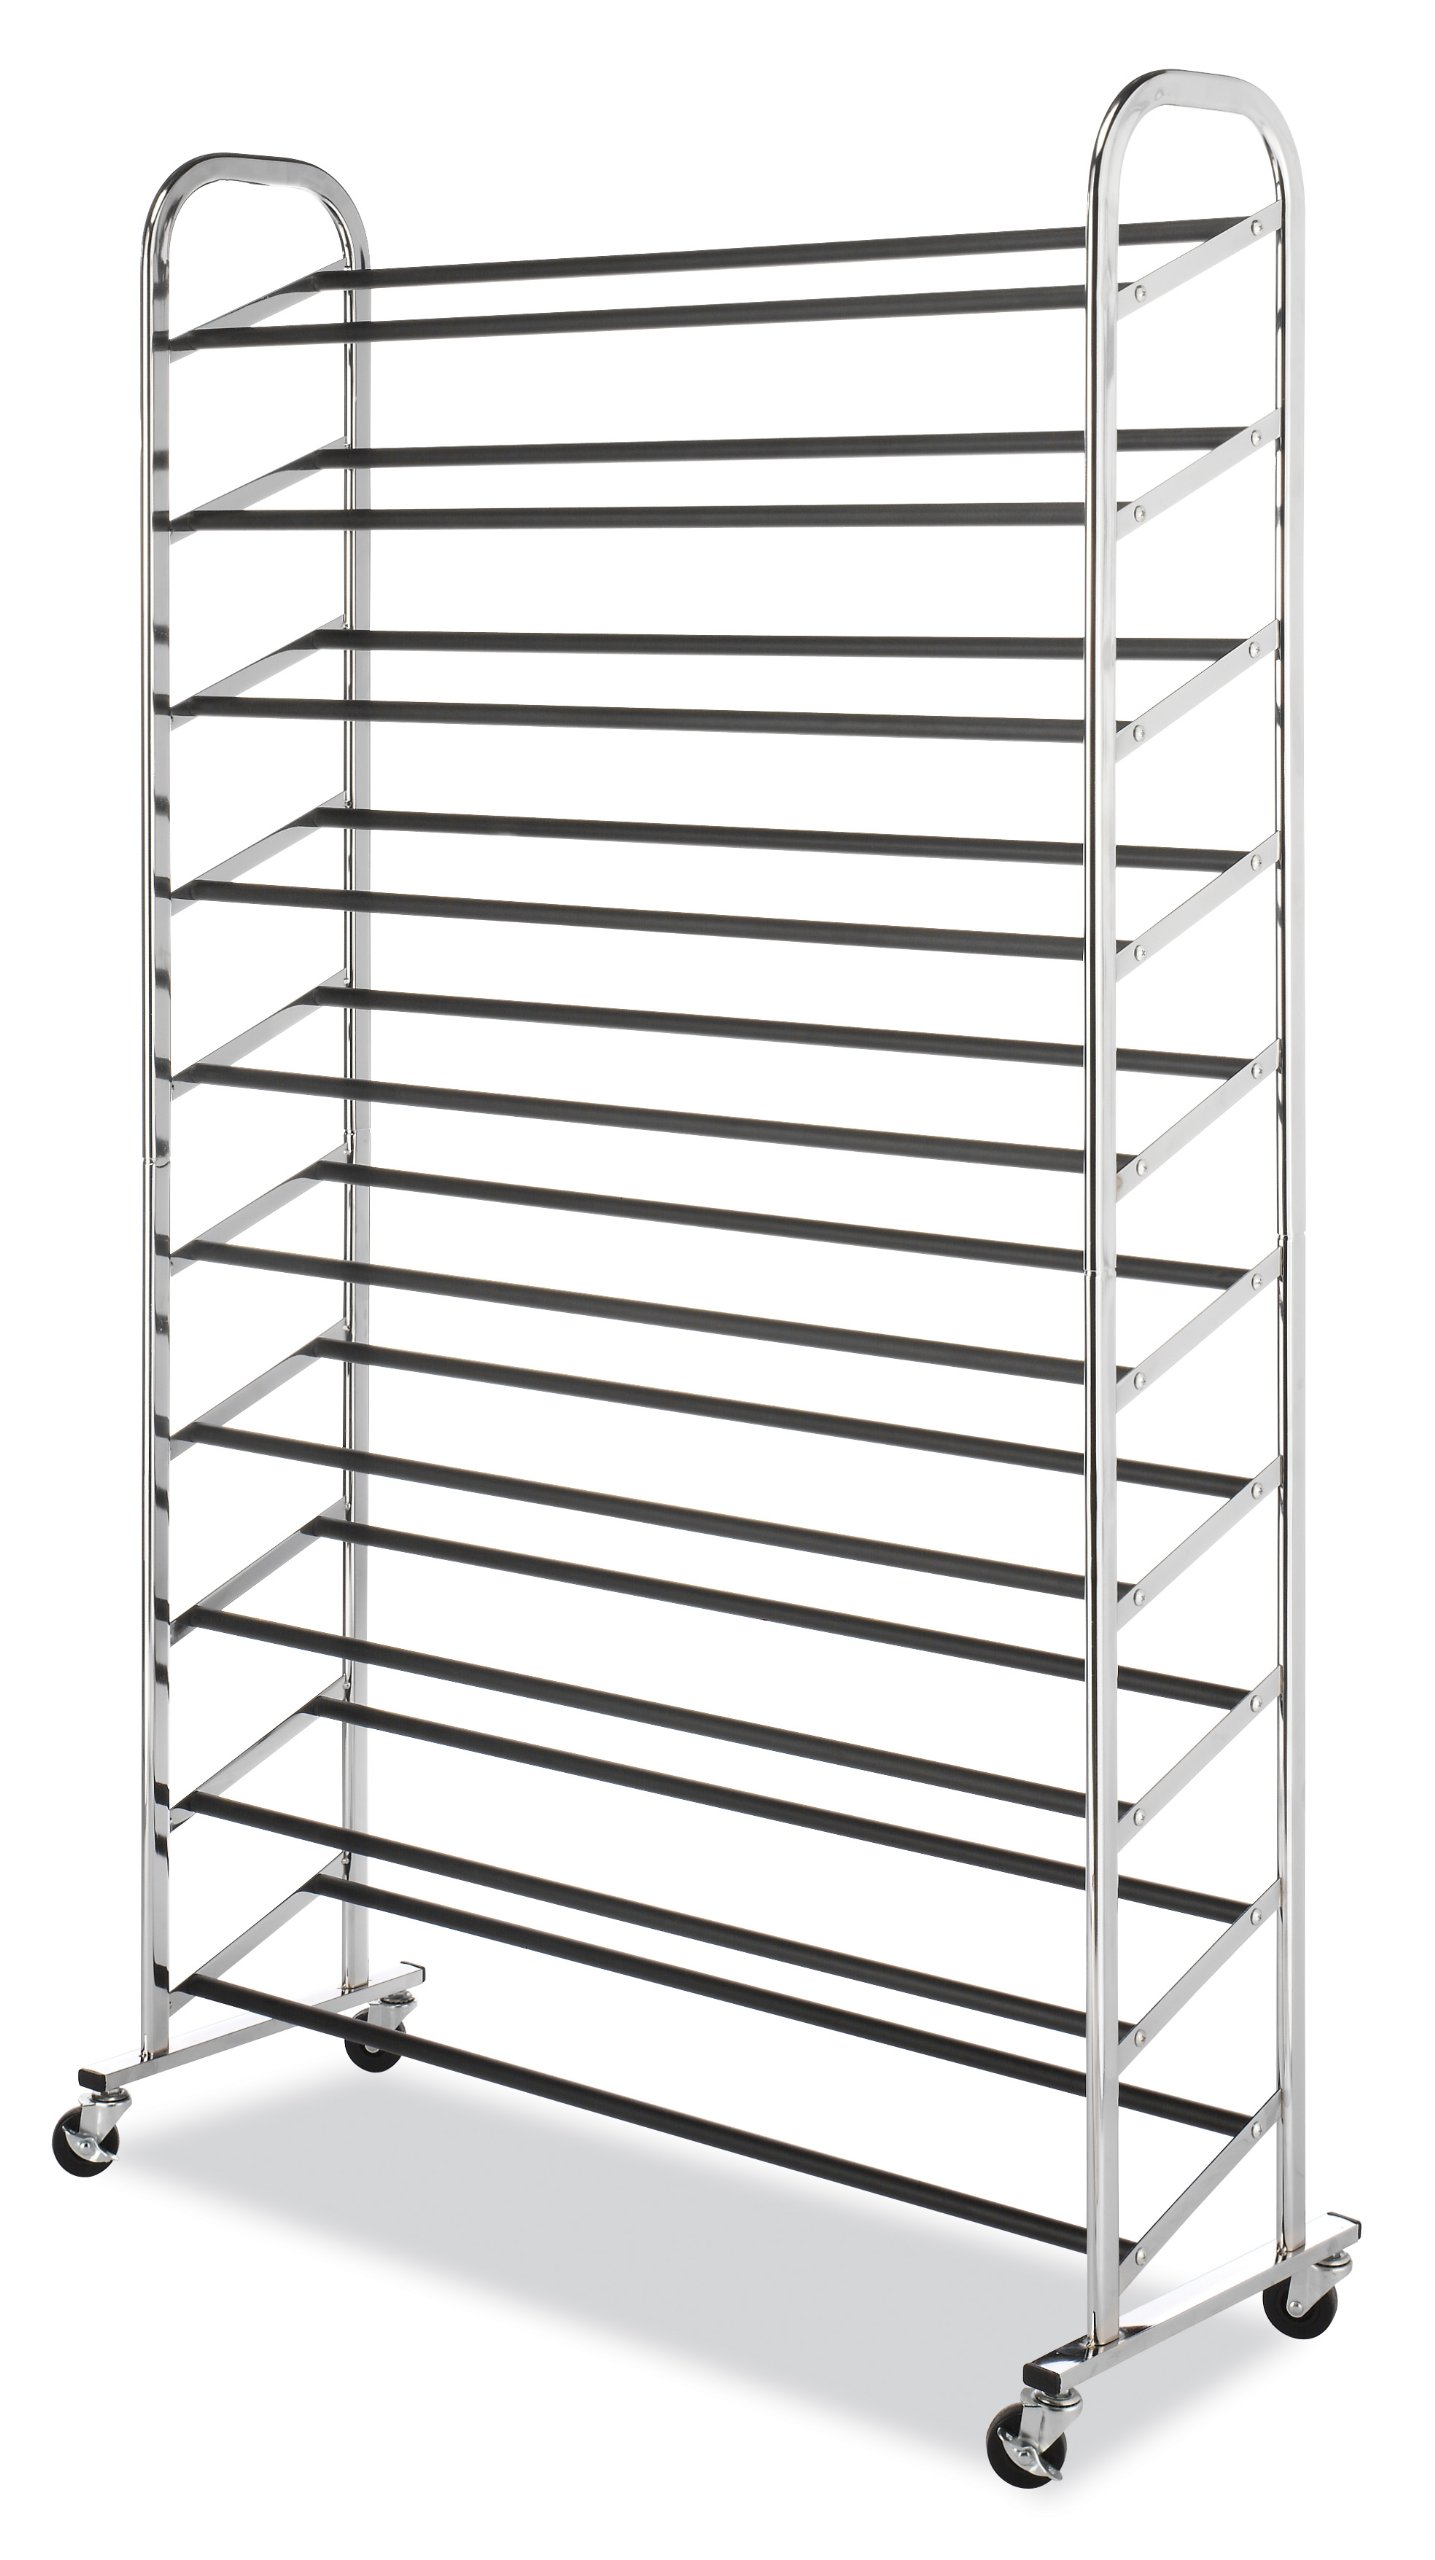 Whitmor 10 Tier Shoe Tower - 50 Pair - Rolling Shoe Rack with Locking Wheels - Chrome